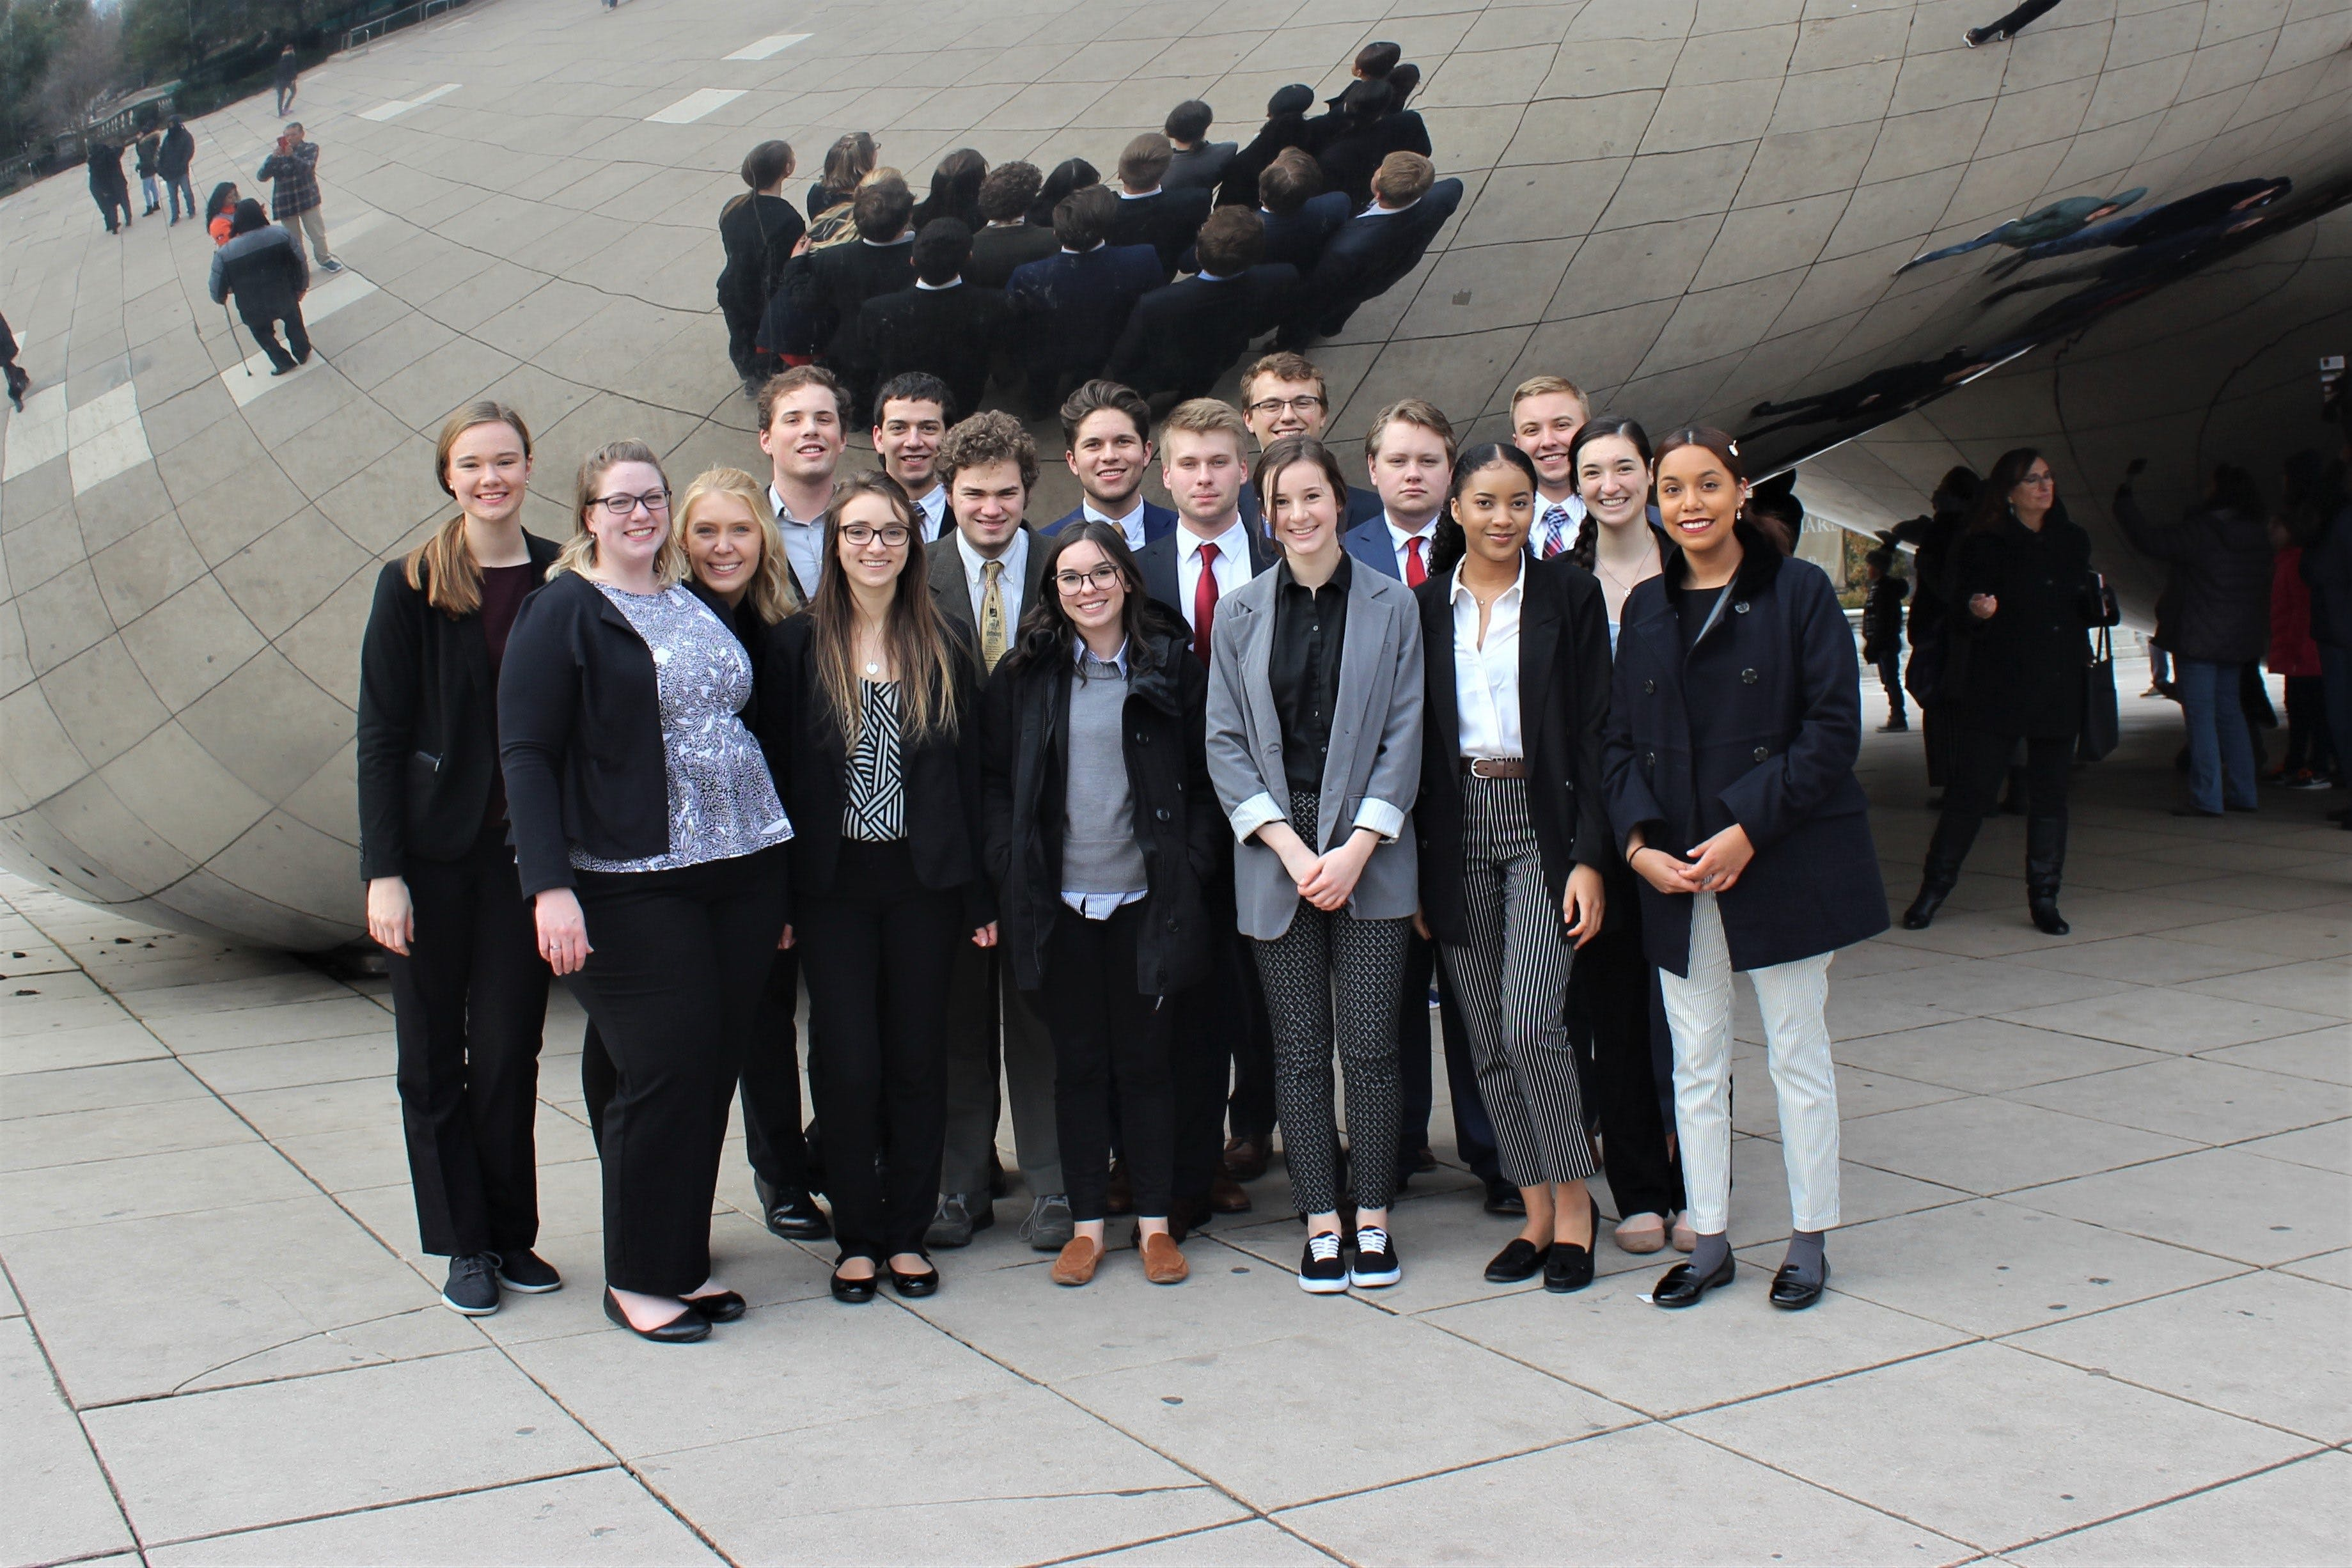 Bethel's Model UN club participated in the American Model United Nations (AMUN) Conference in Chicago in November.